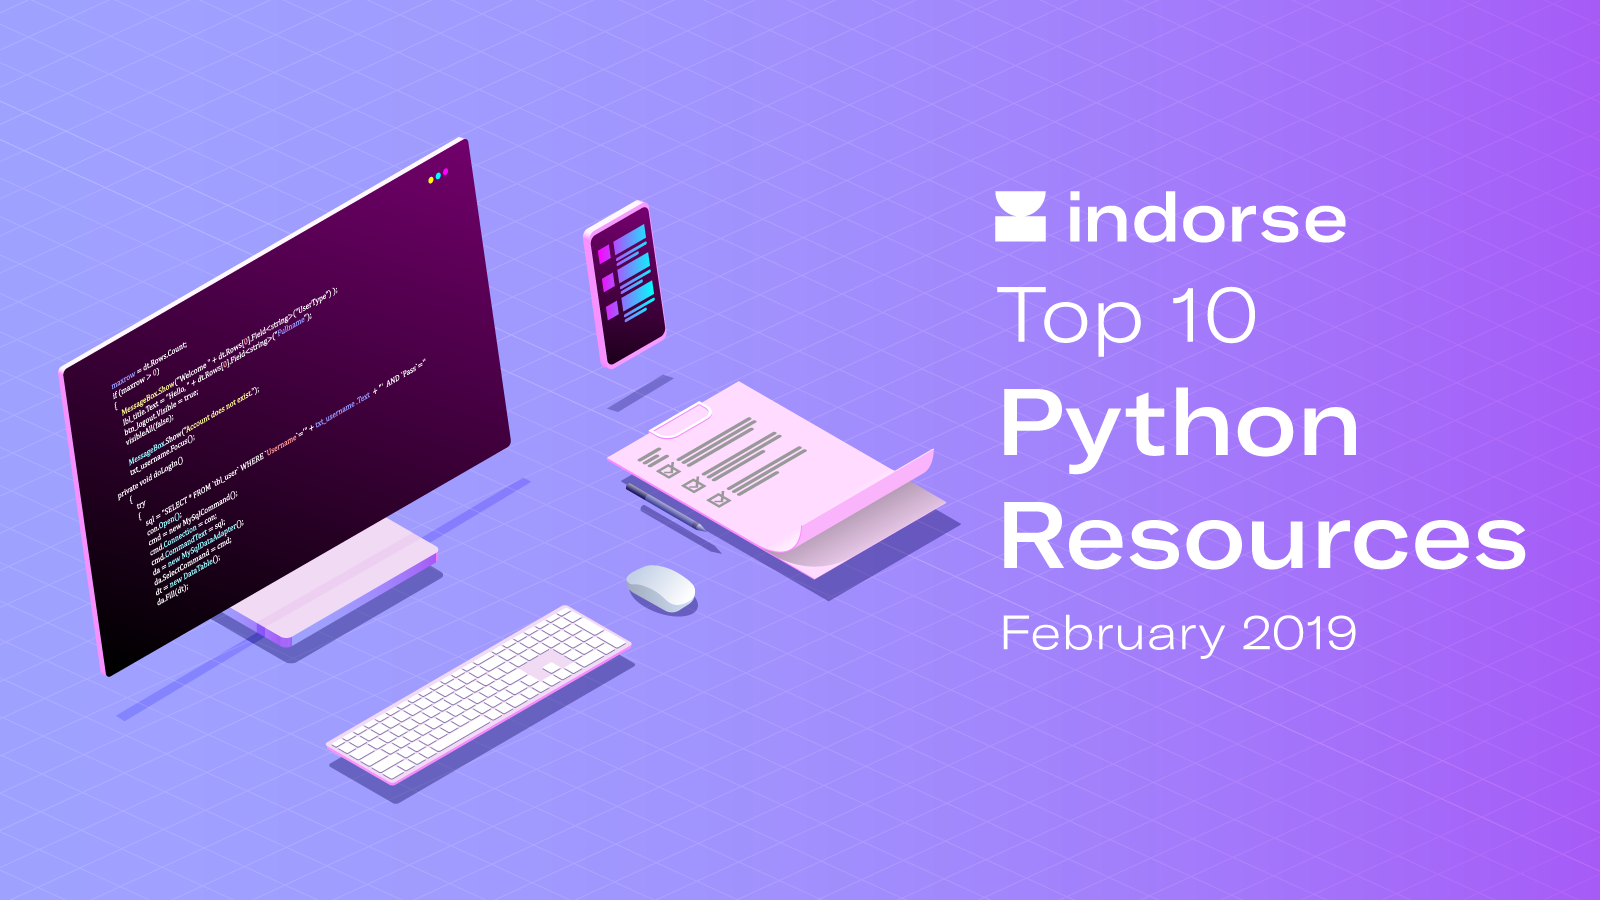 Top 10 Python Resources, February 2019 - Indorse